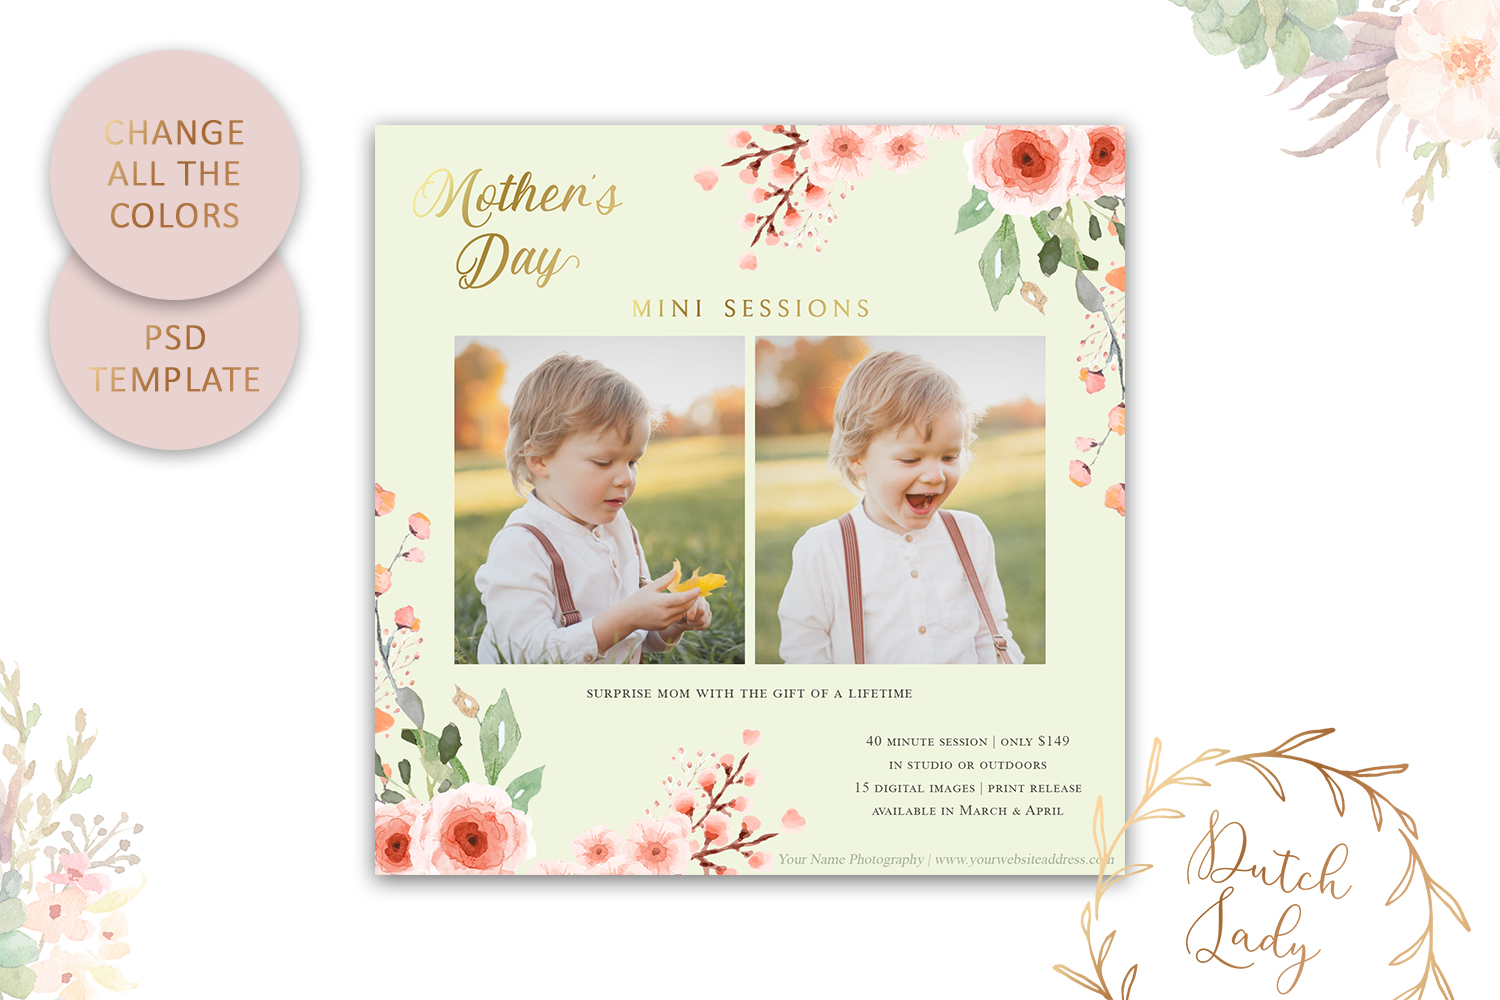 PSD Mother's Day Photo Session Card Template - Design #37 example image 4